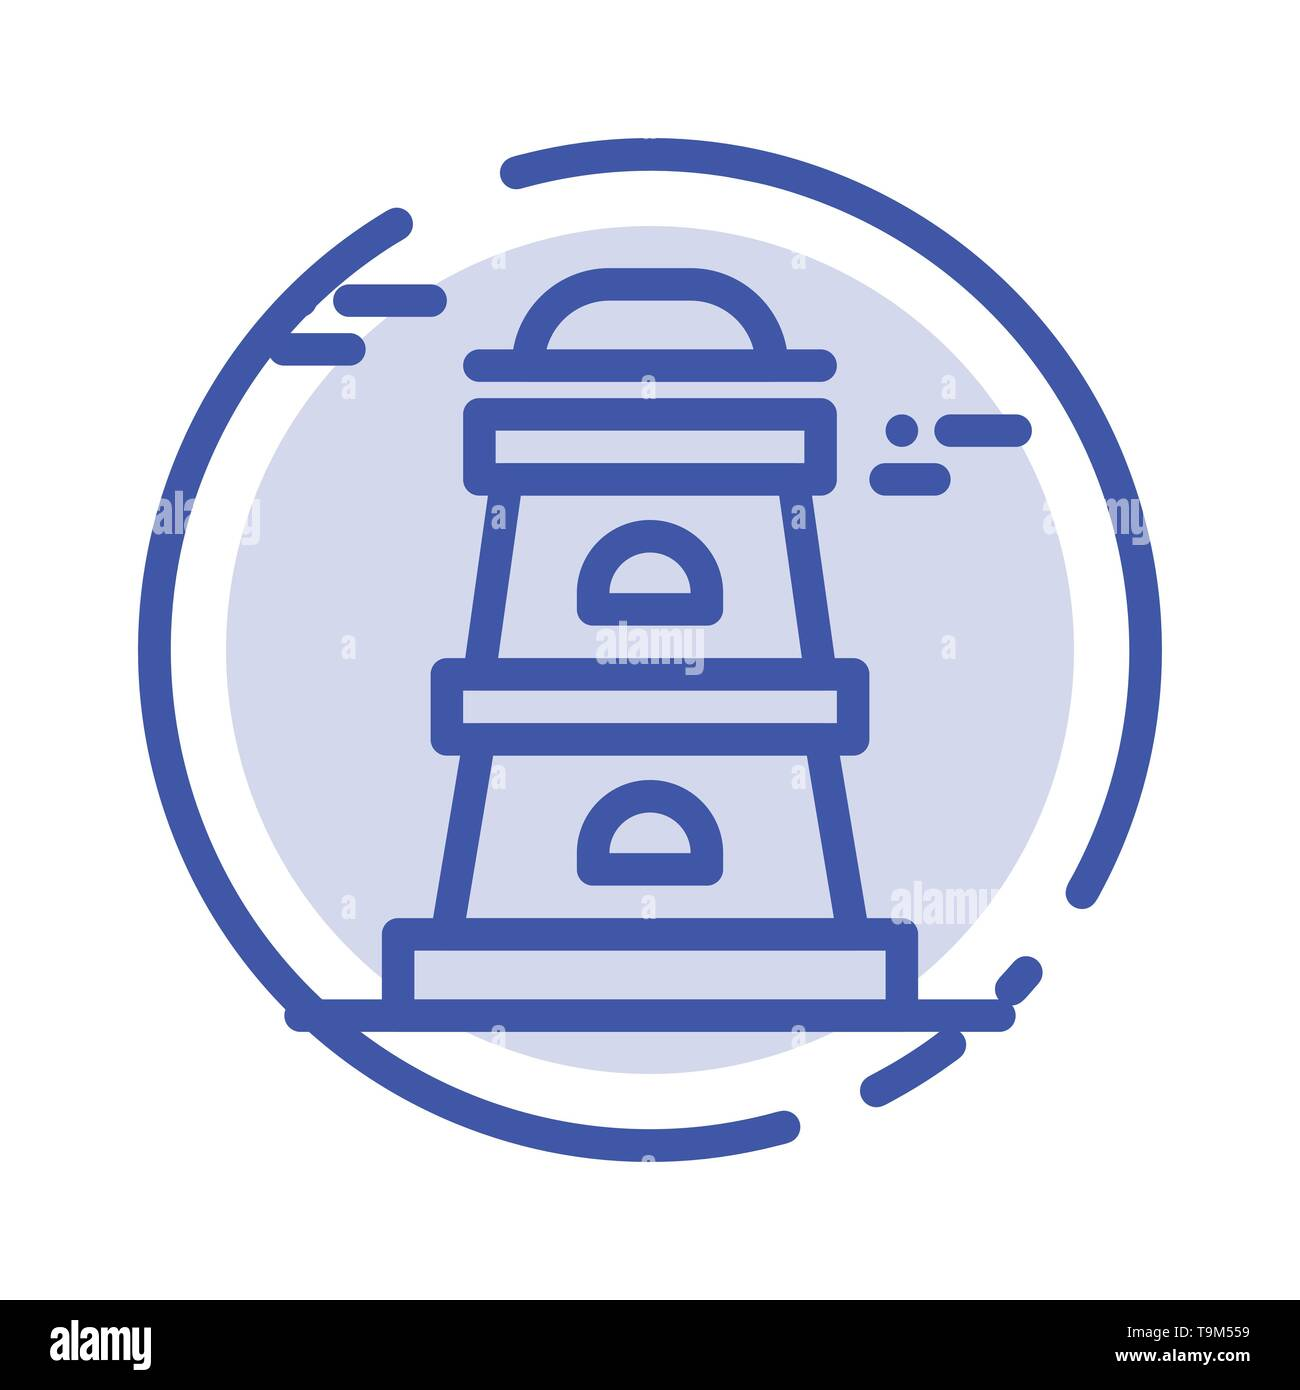 Observatory, Tower, Watchtower Blue Dotted Line Line Icon - Stock Image